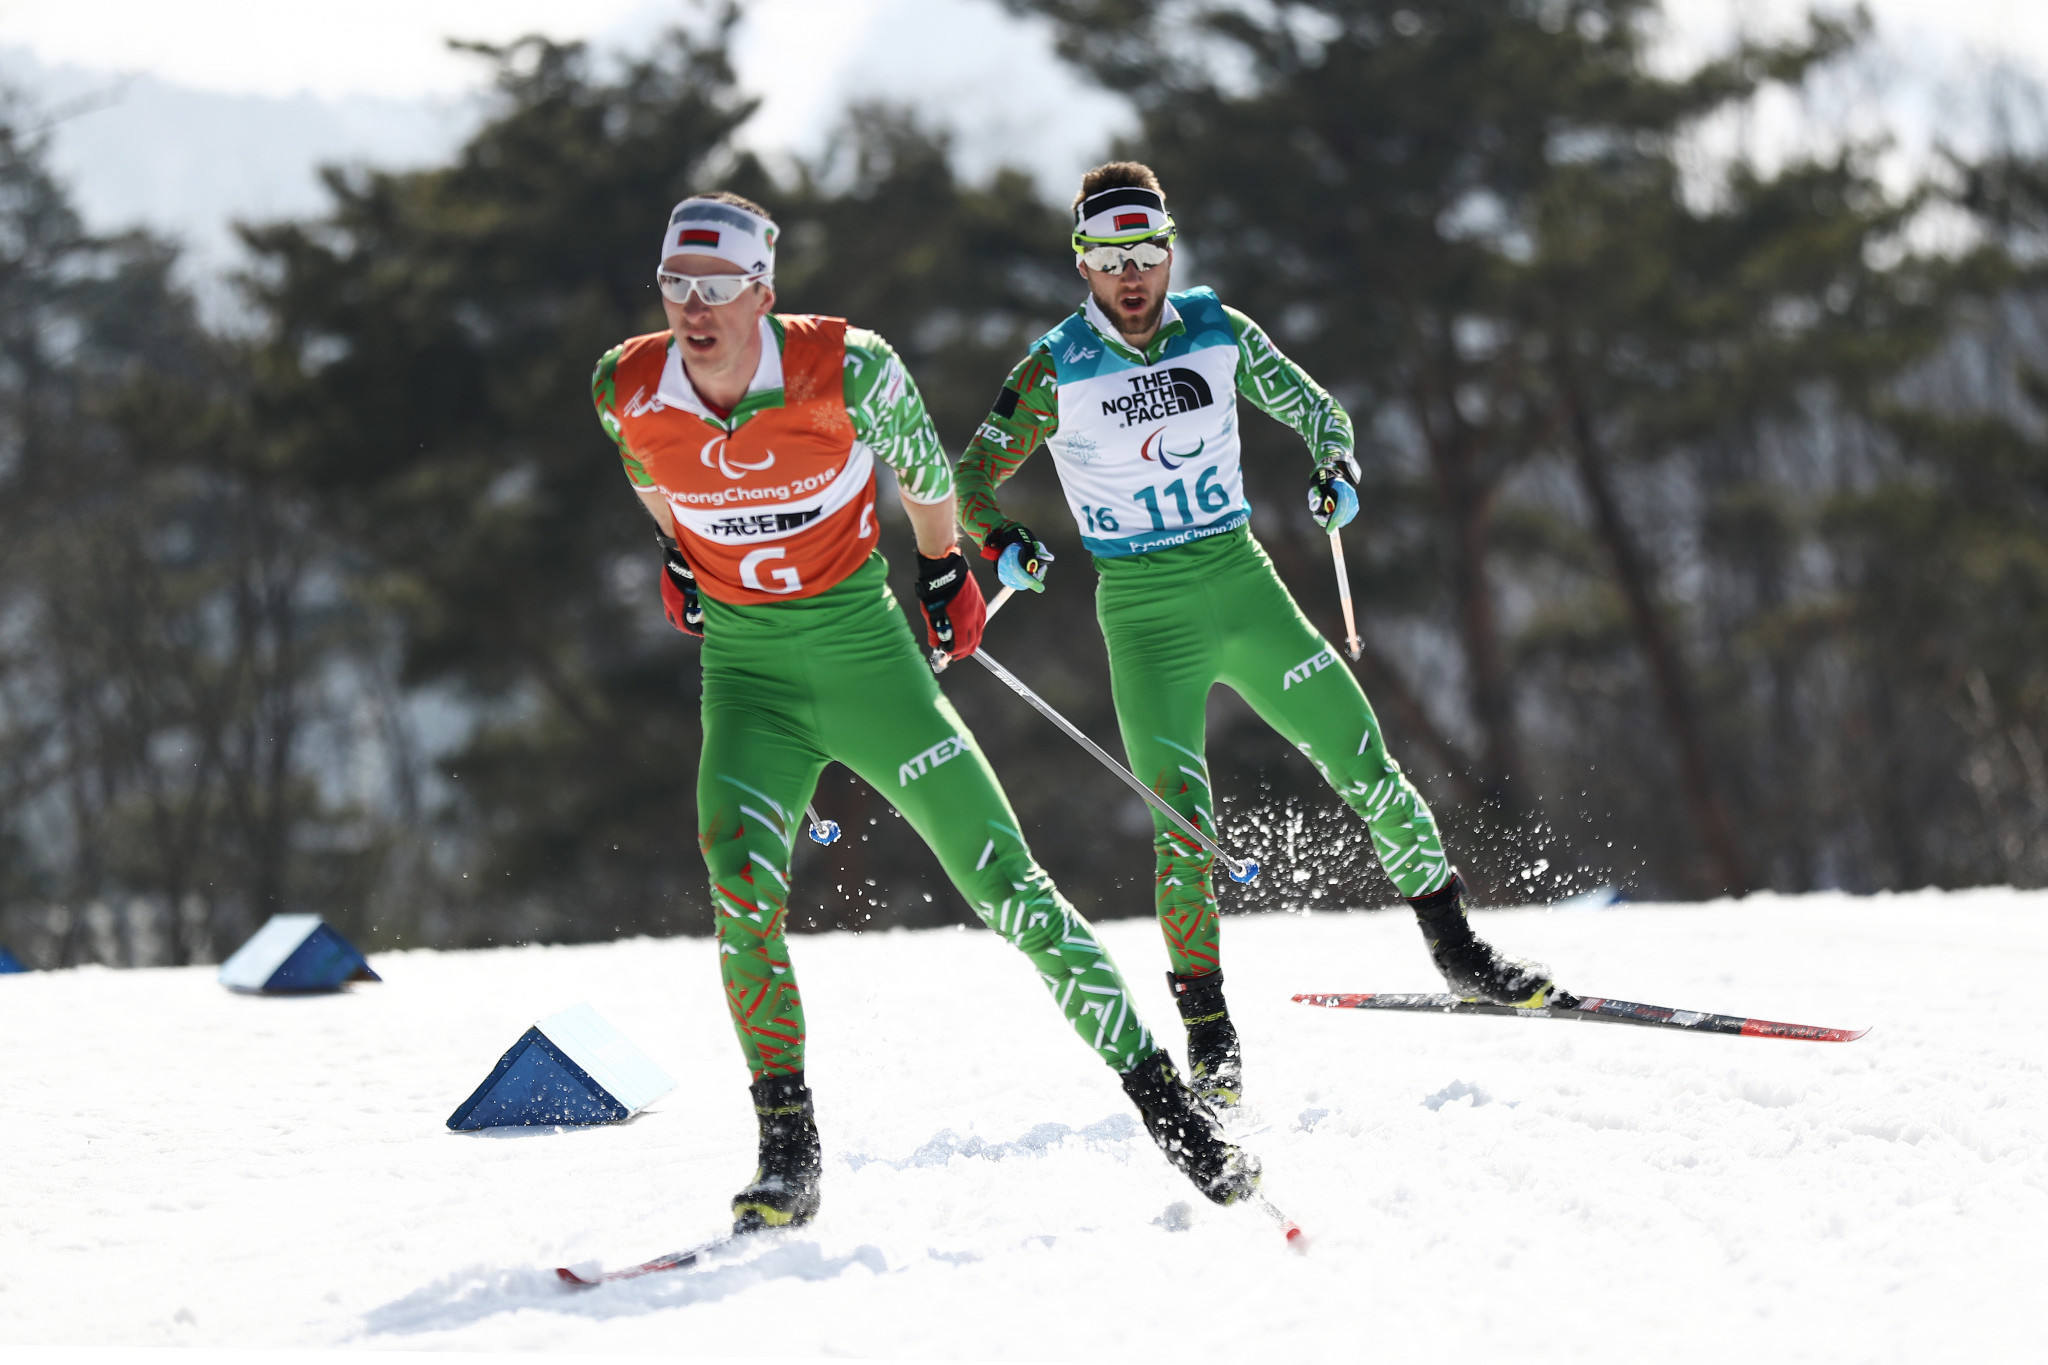 Belarus' Yury Holub was crowned the overall World Para Biathlon World Cup champion ©Getty Images